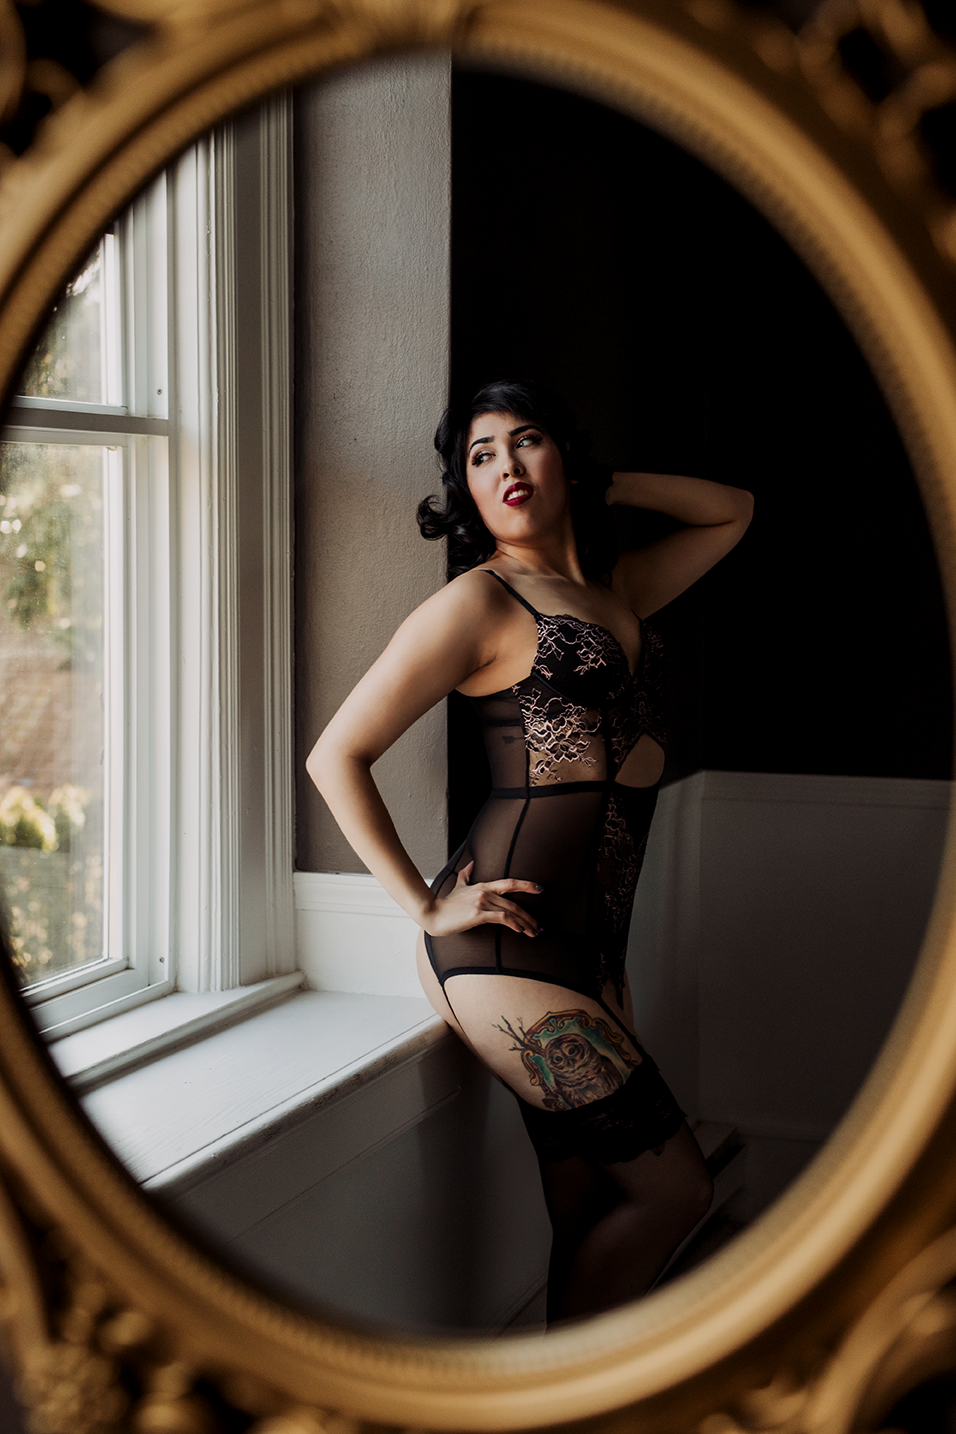 Vancouver-Island-Boudoir-Photography-15.png